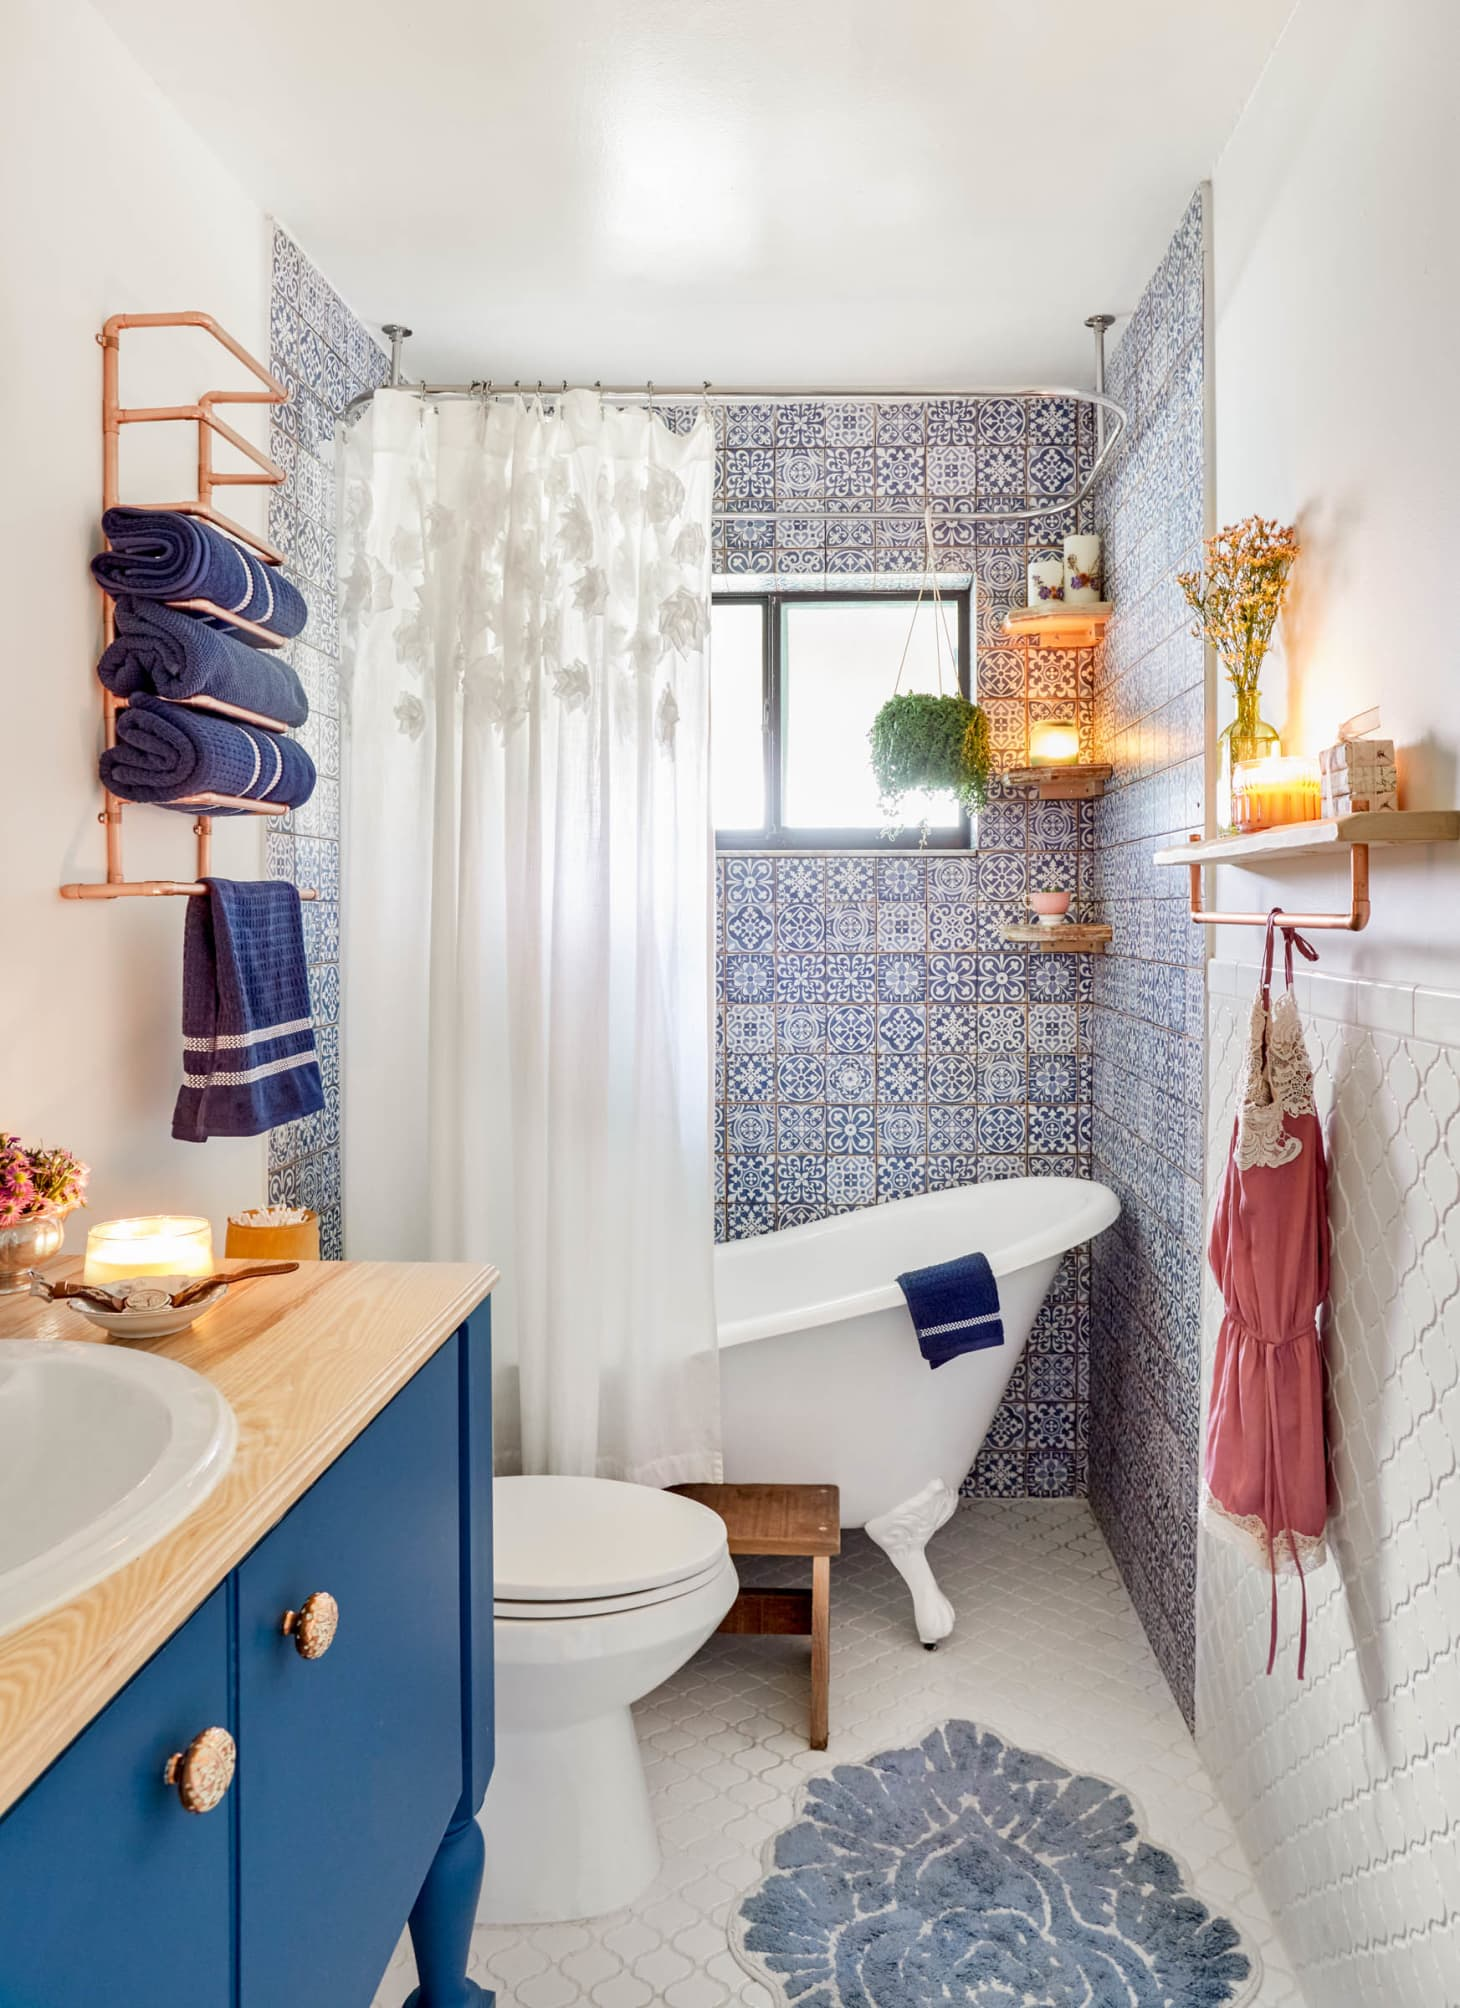 50 Best Small Bathroom Decorating Ideas - Tiny Bathroom ...